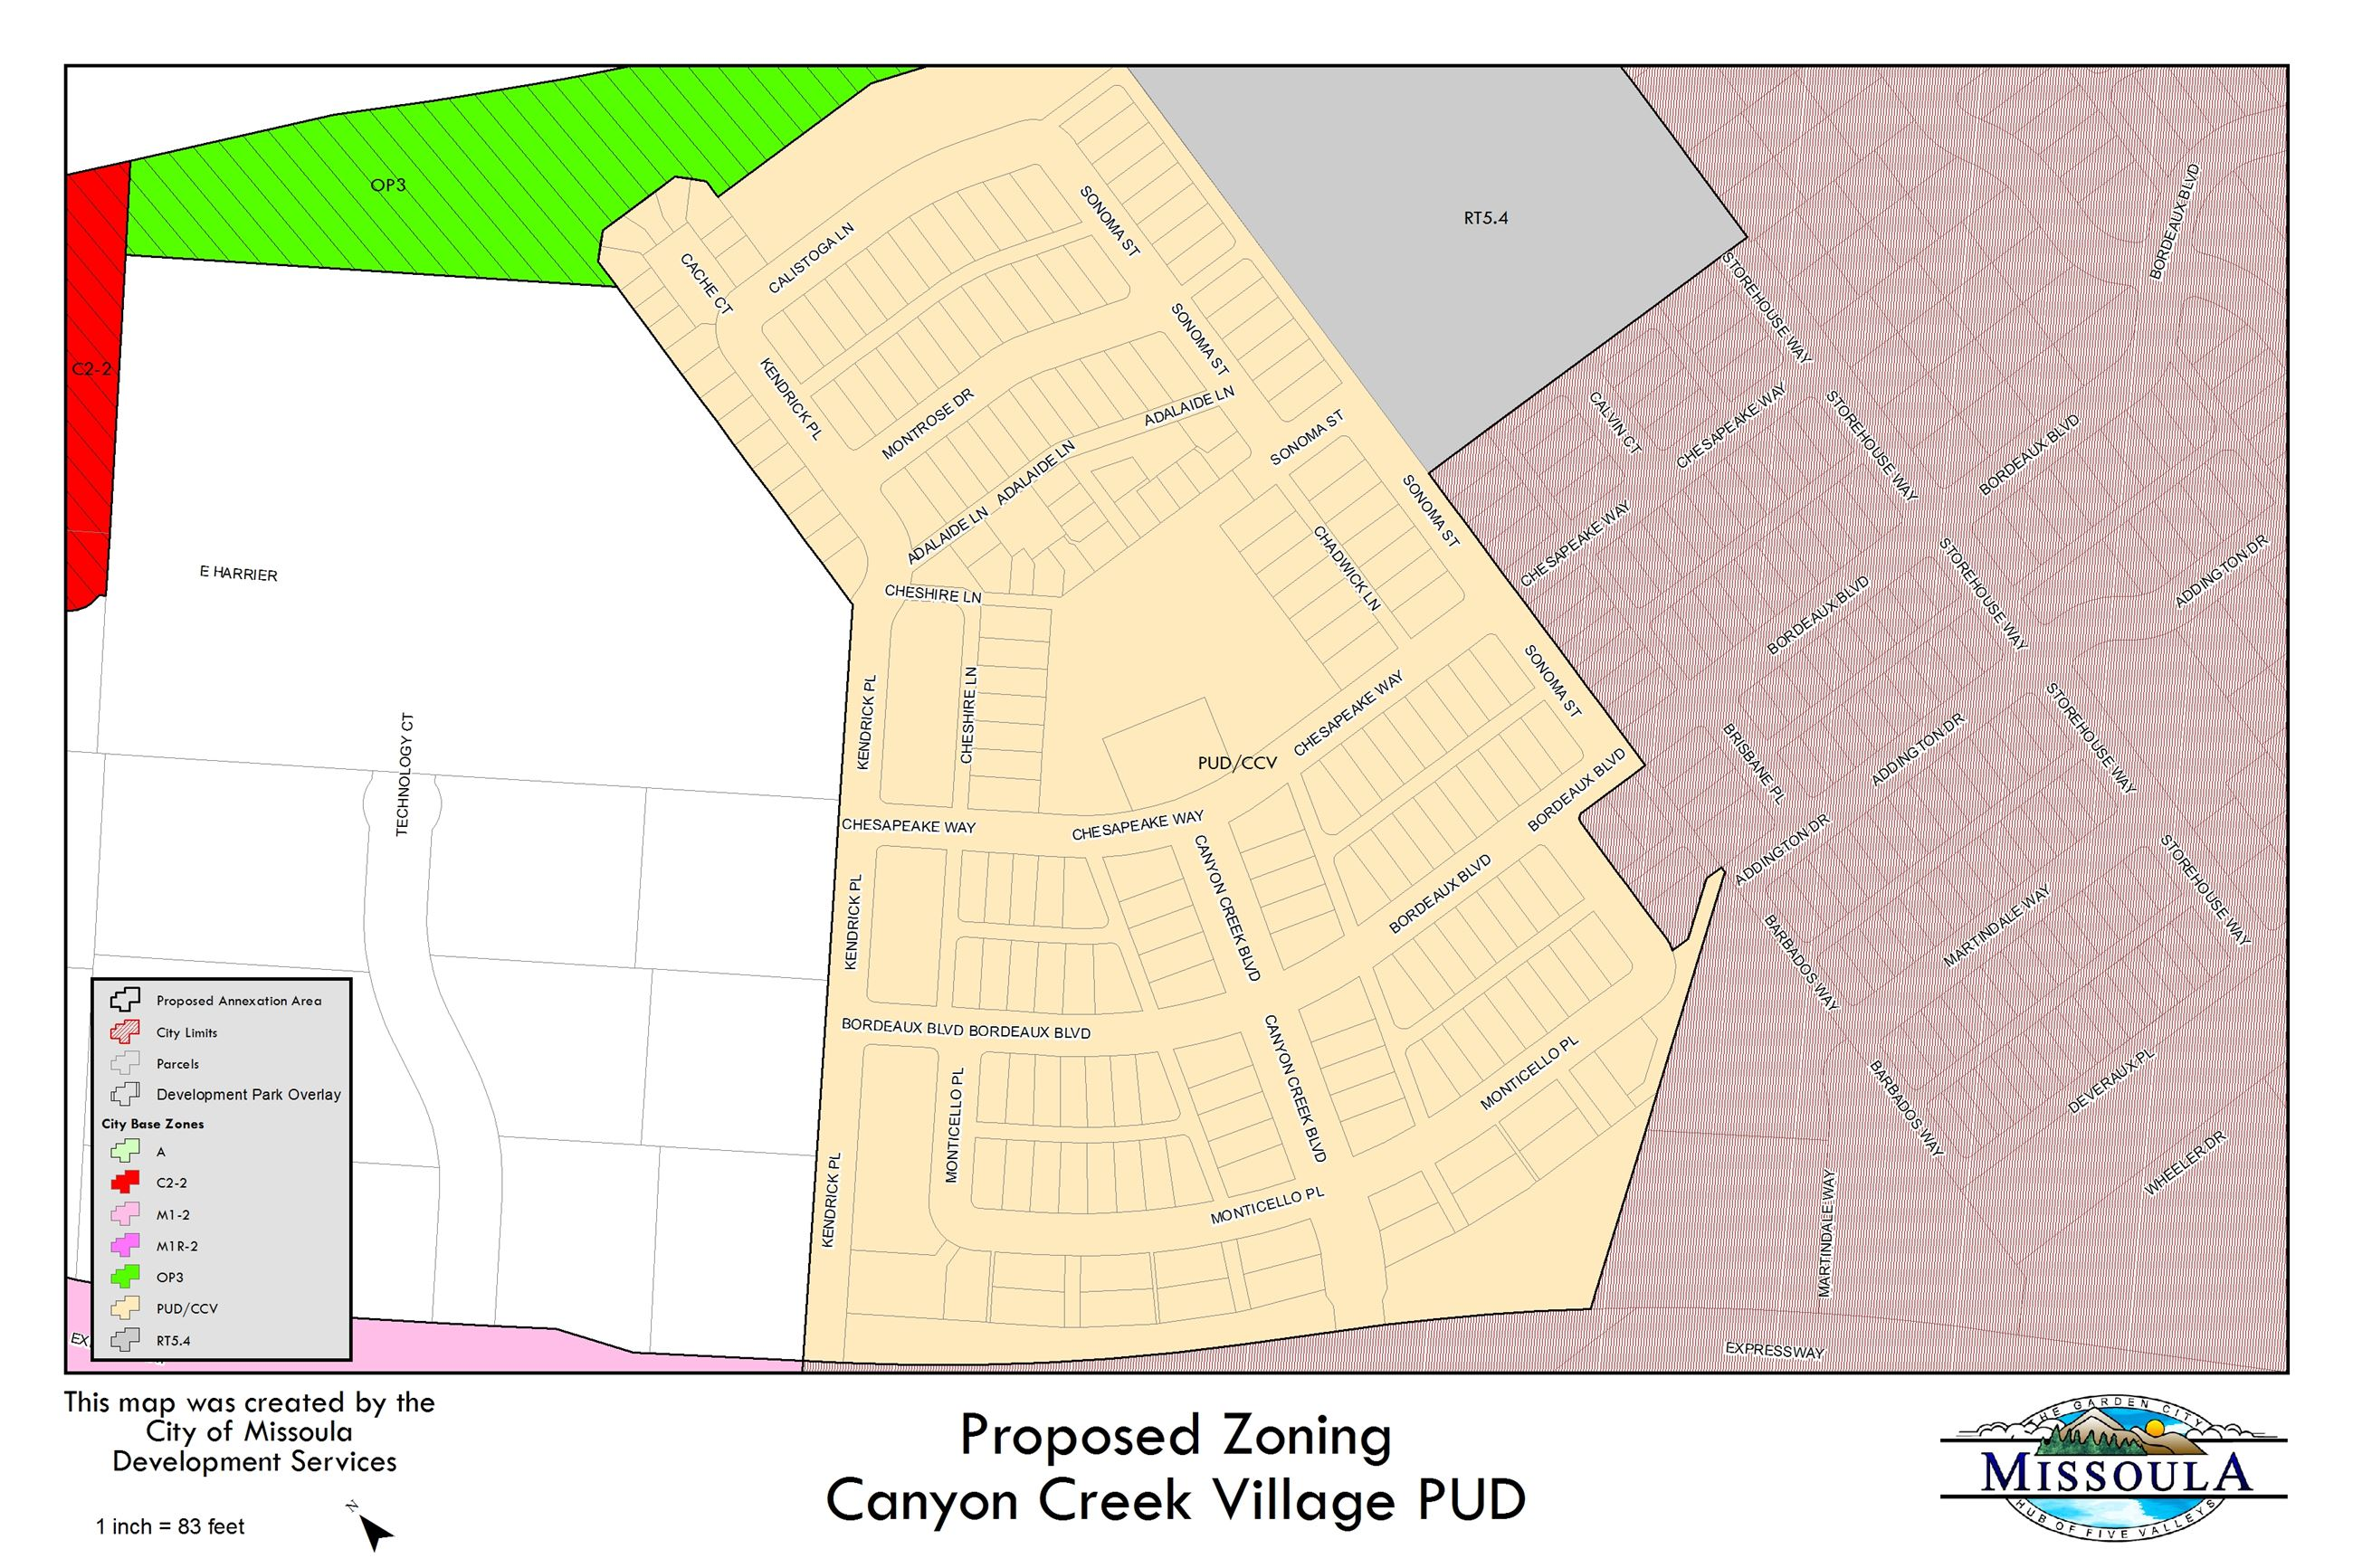 CCV - Zoning Opens in new window